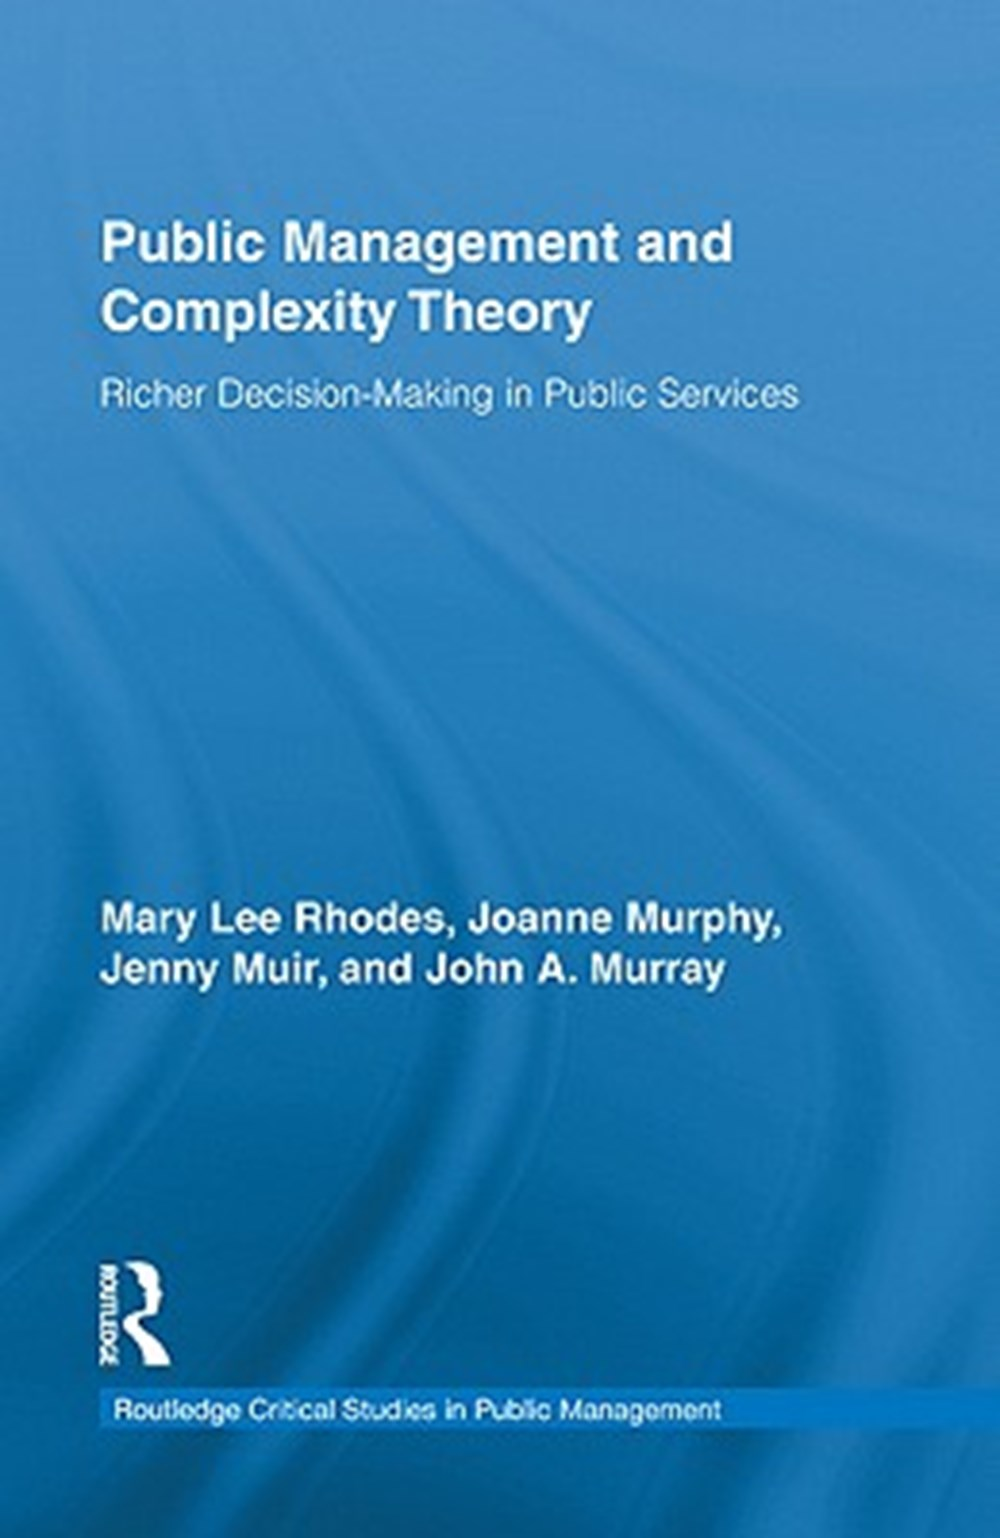 Public Management and Complexity Theory Richer Decision-Making in Public Services